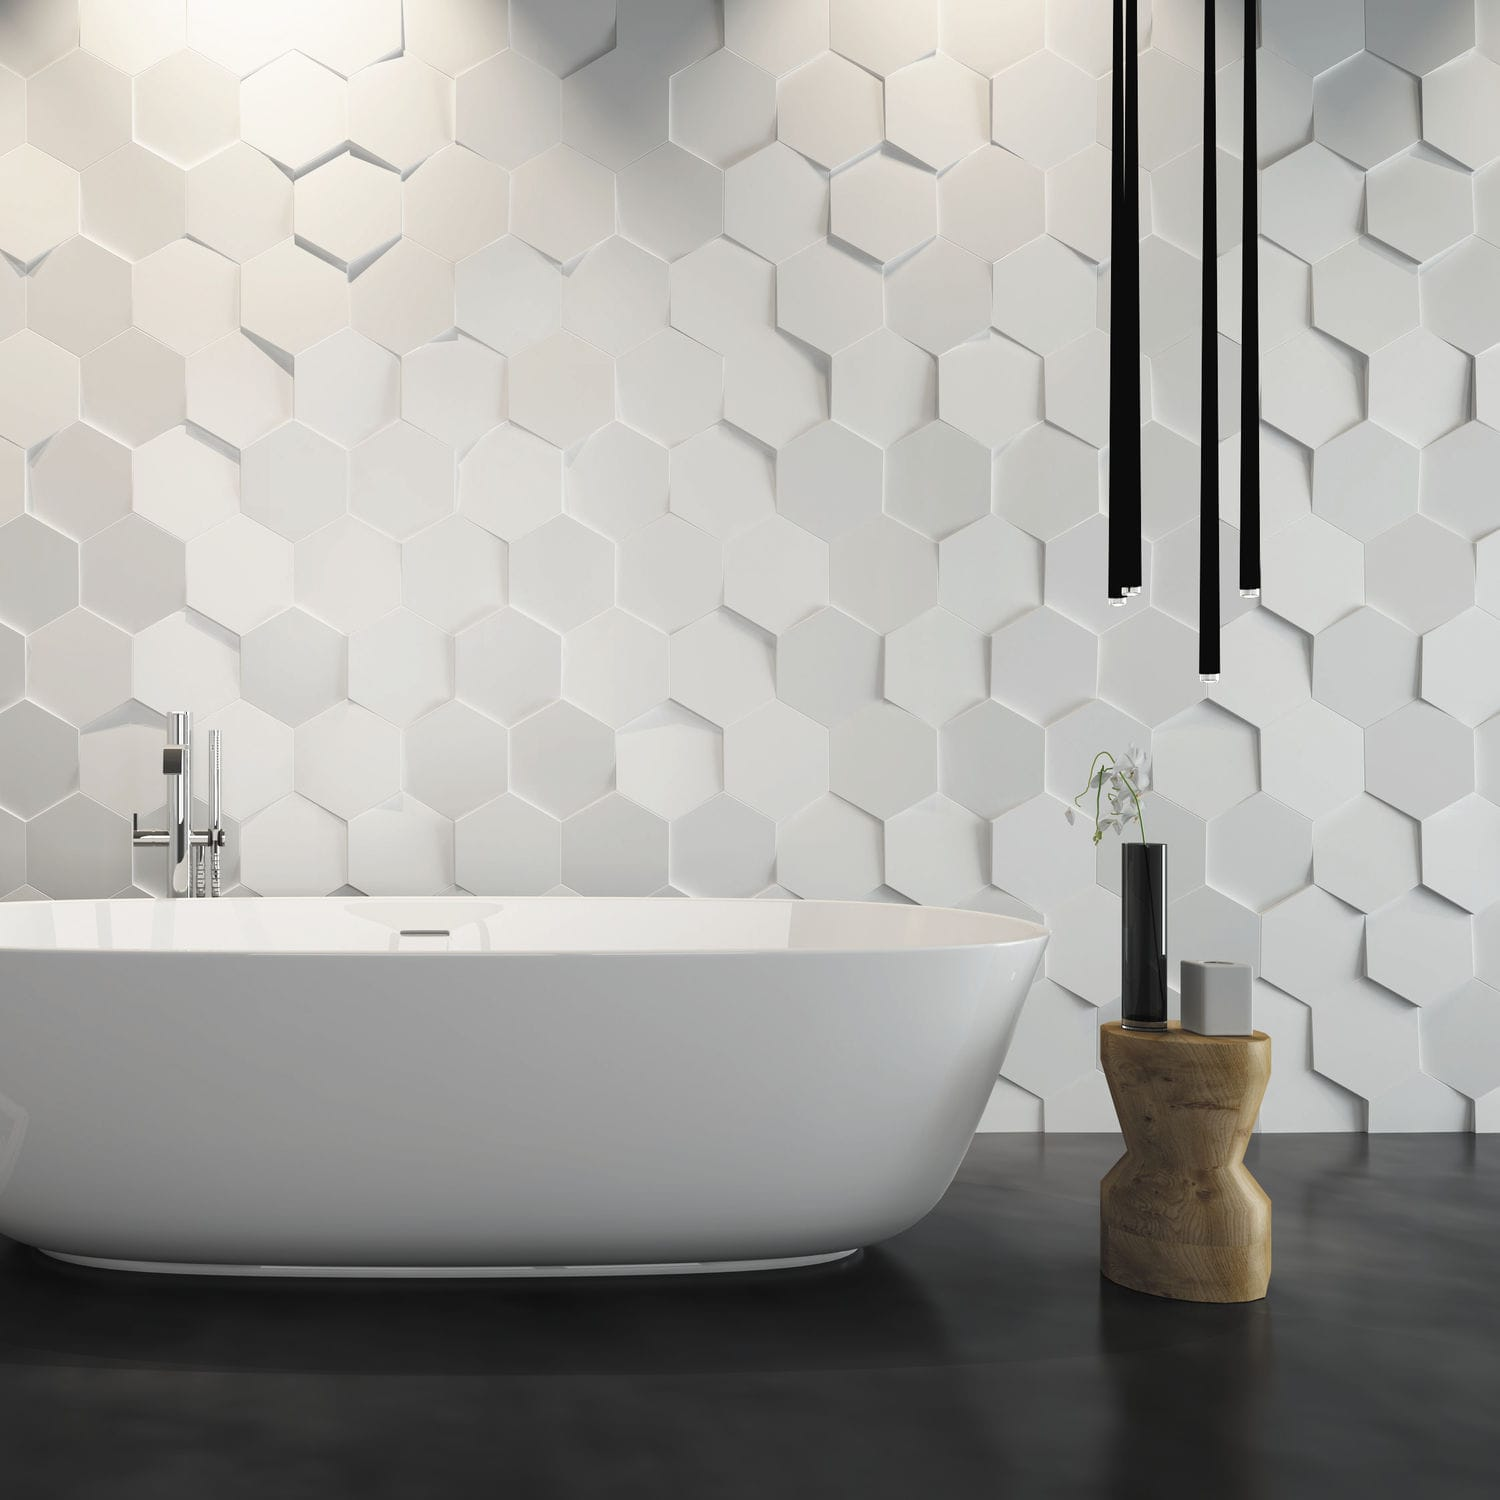 Bathroom tile / wall / ceramic / textured HEXA WOW Design EU .